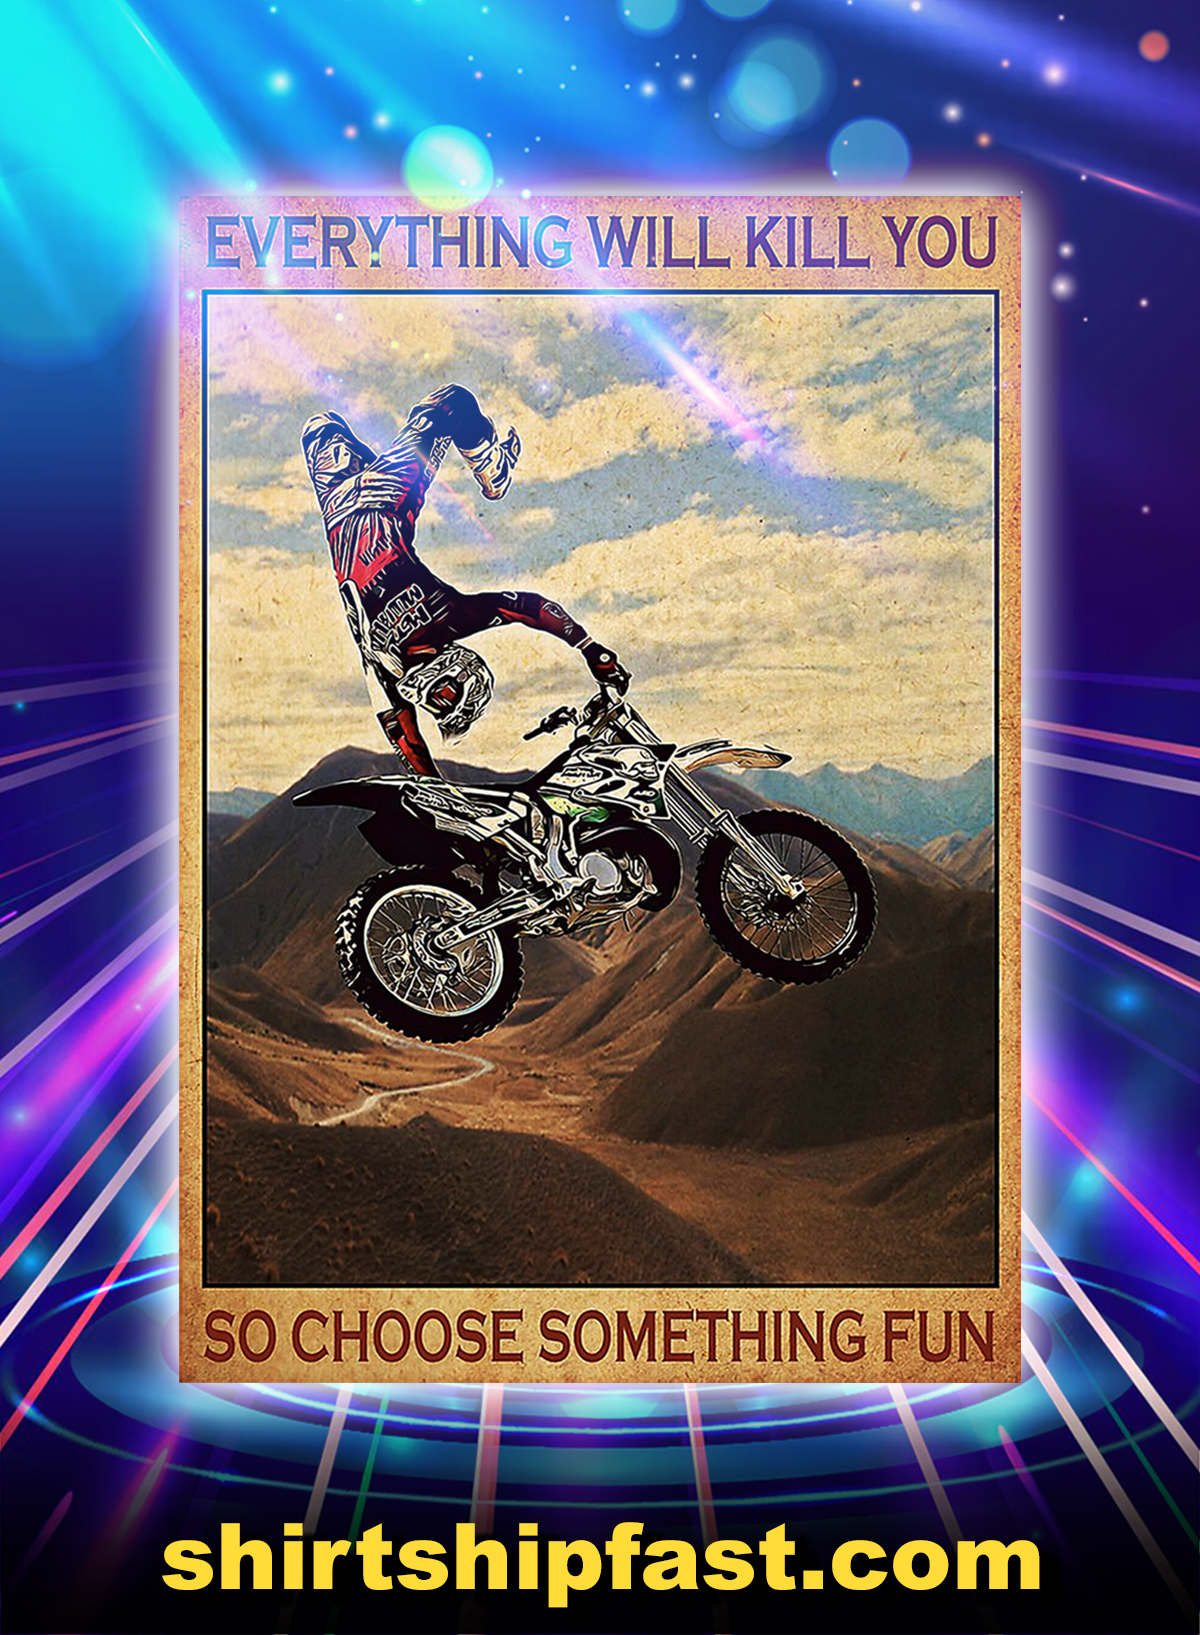 Motocross everything will kill you so choose something fun poster - A1